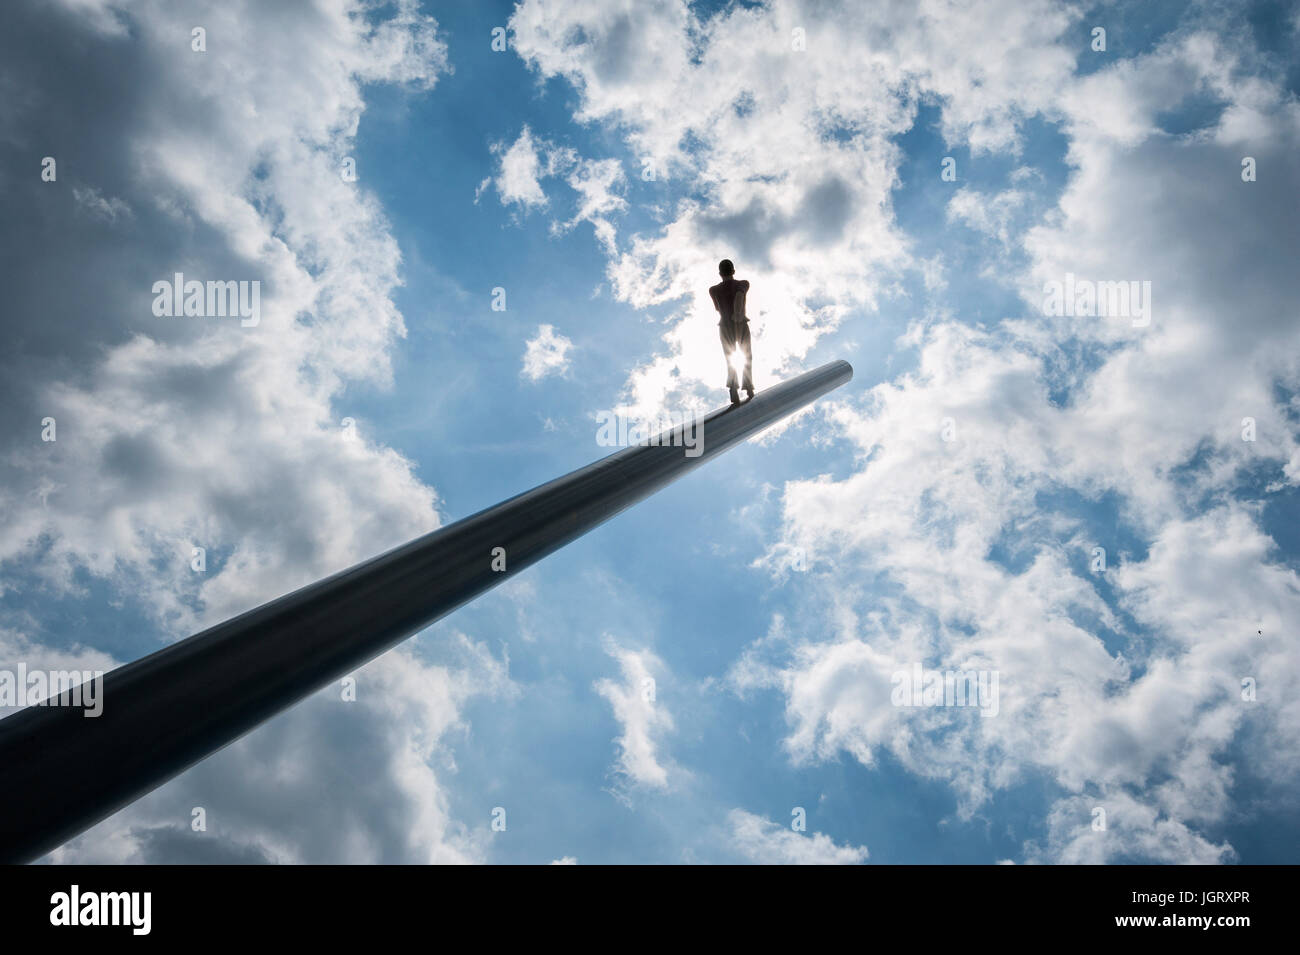 Documenta 14 in Kassel:  Himmelsstuermer, Man Walking to the Sky, sculpture from artist Jonathan Borofsky, from Stock Photo